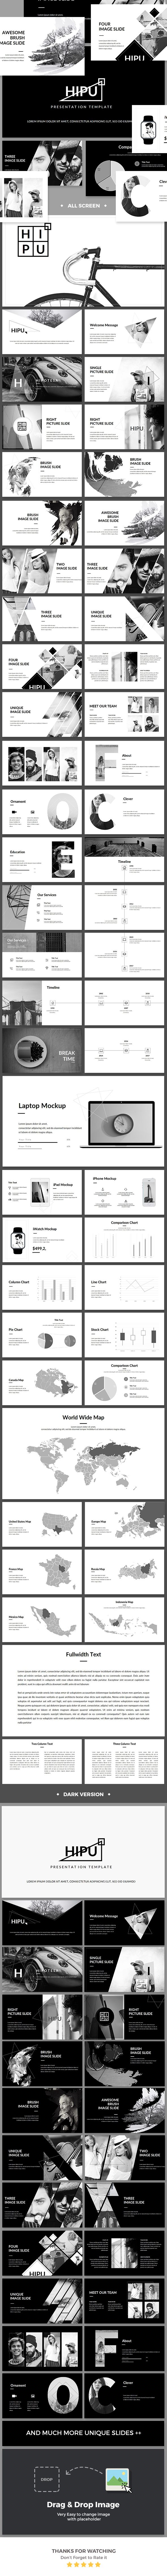 HIPU - Black White PowerPoint Presentation Template